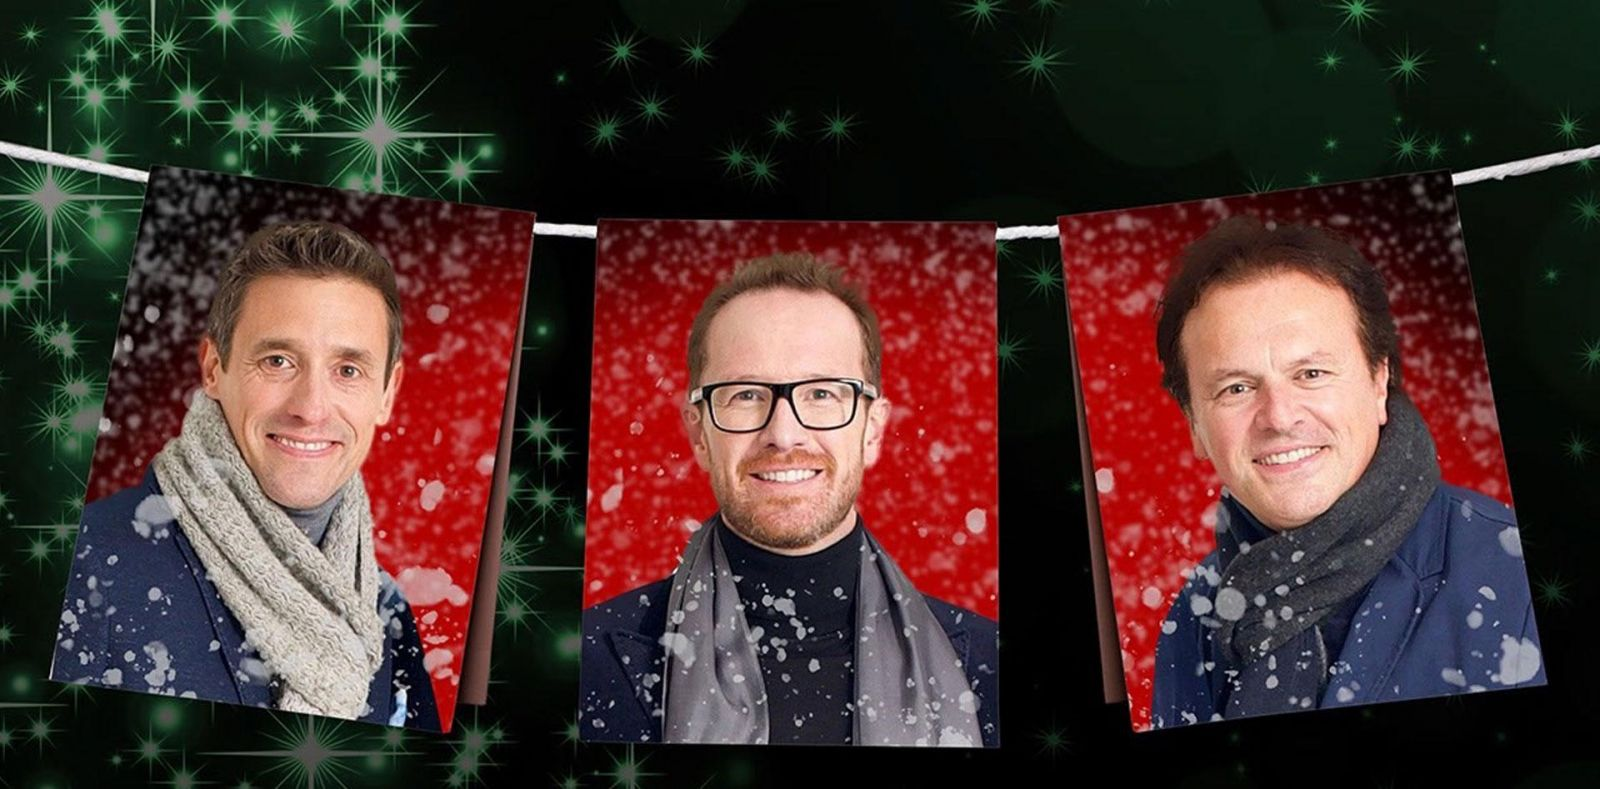 Tenors Unlimited - A Christmas Concert